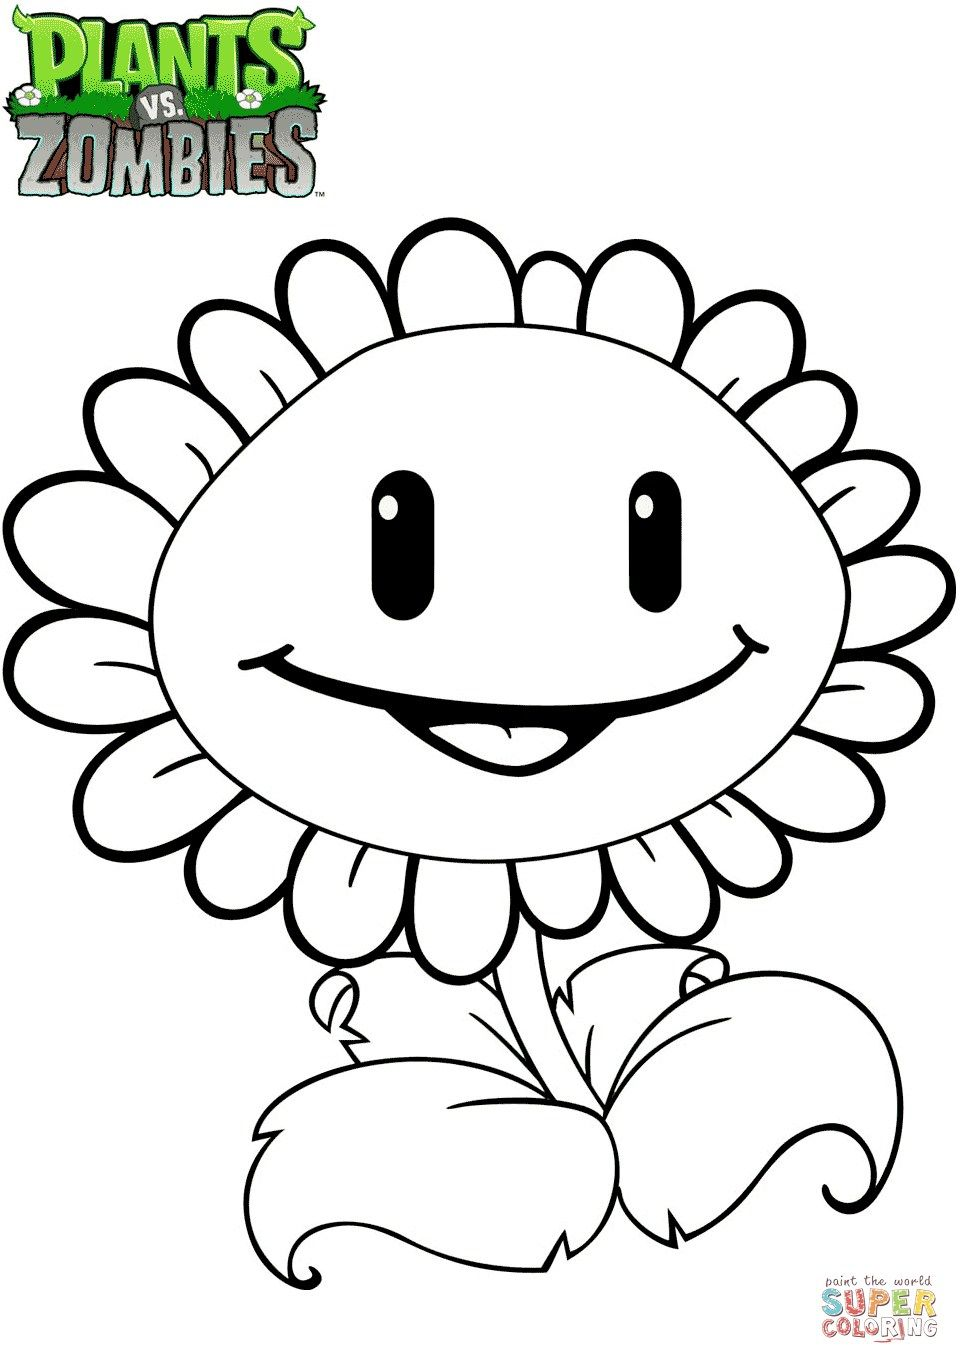 22 Wonderful Picture Of Plants Vs Zombies Coloring Pages Davemelillo Com Plants Vs Zombies Birthday Party Sunflower Coloring Pages Sunflower Colors